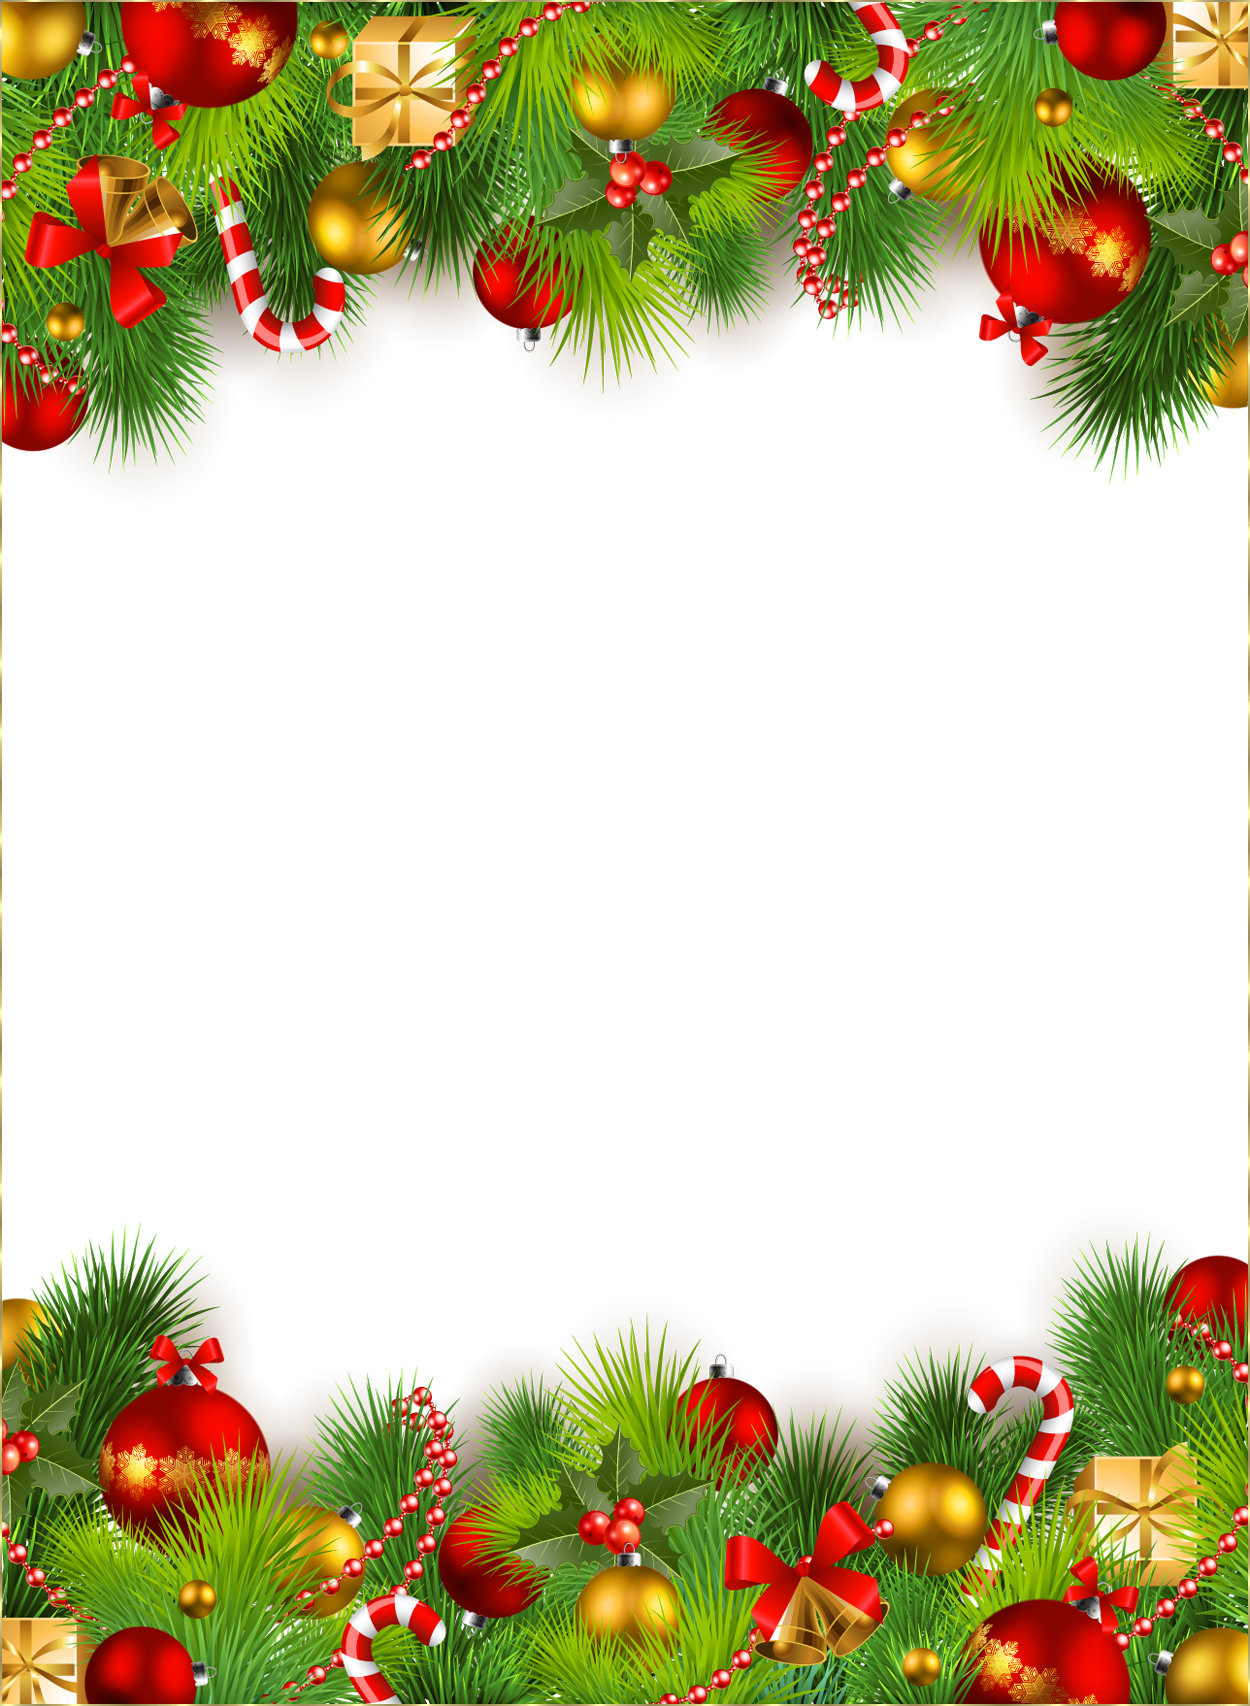 Picture Frame Christmas Ornaments | Wallpapers9 - Christmas PNG